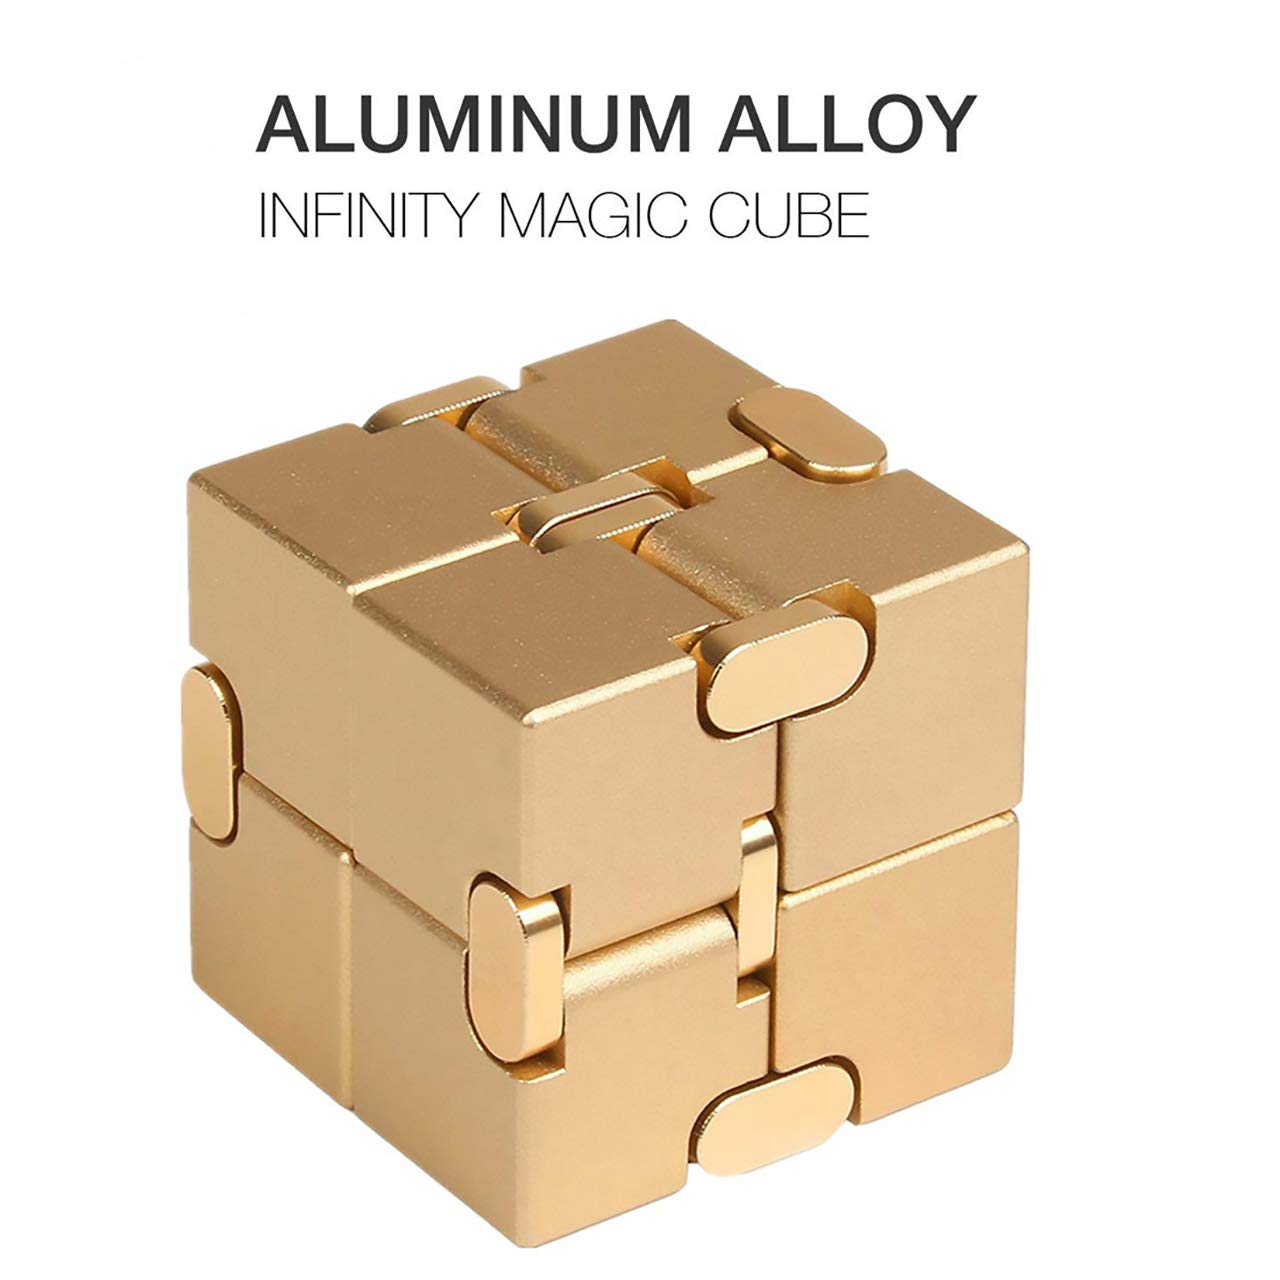 Metal Infinity Cube, Solid Aluminum Alloy Material,Stress Relief Toy Games Square Cube,Infinity Cube Prime for Stress and Anxiety Relief/ADHD, Ultra Durable (Metallic)